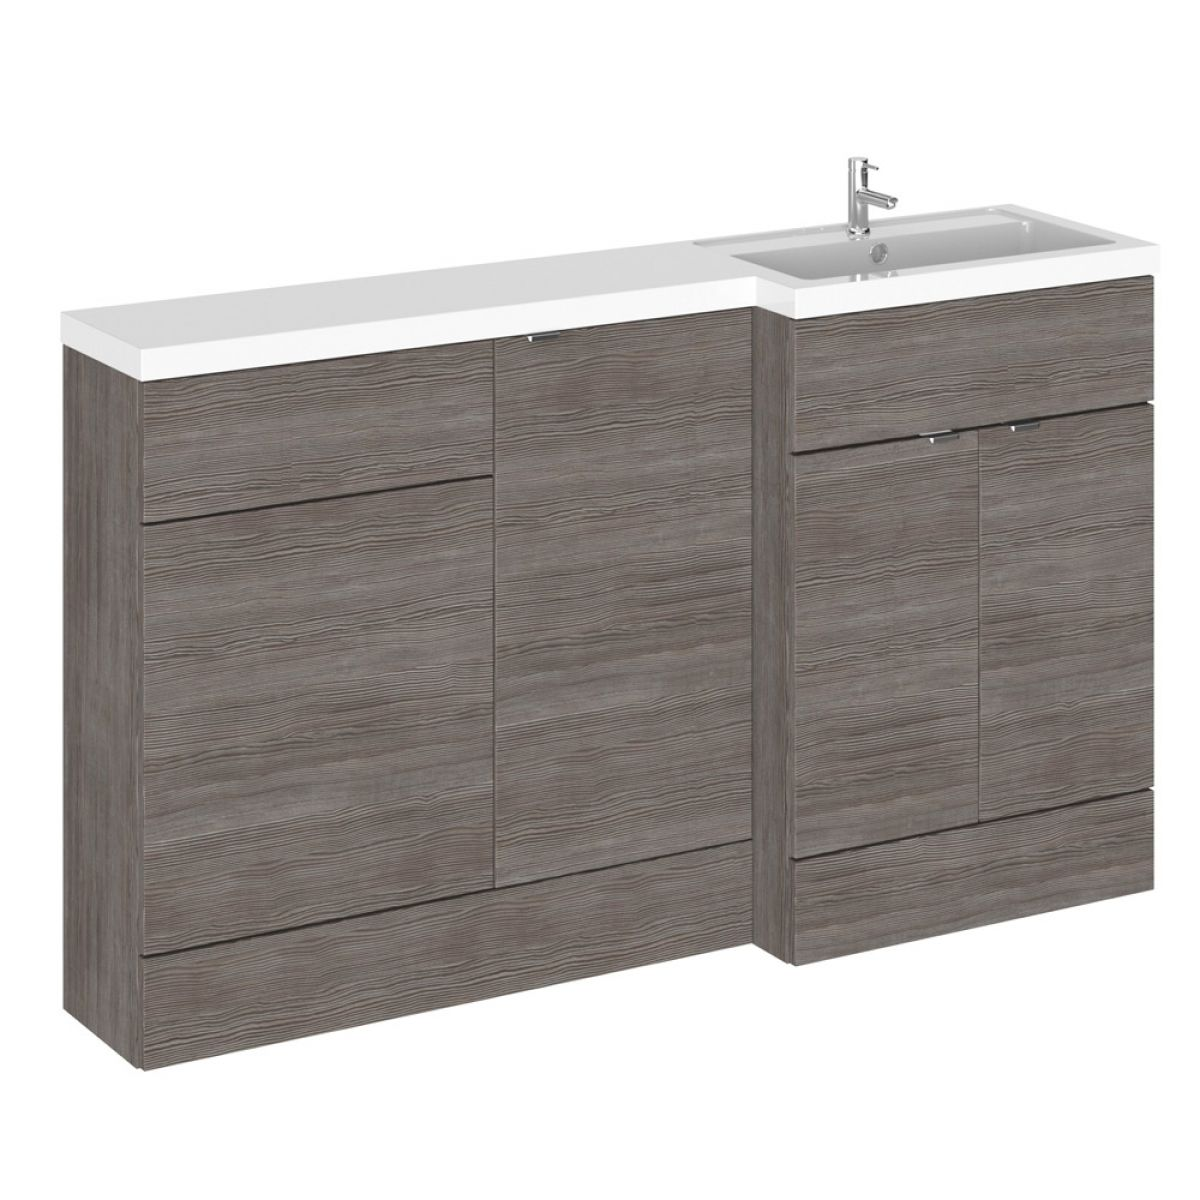 Hudson Reed Fusion Grey Avola Full Depth Combination Furniture Pack 1500mm